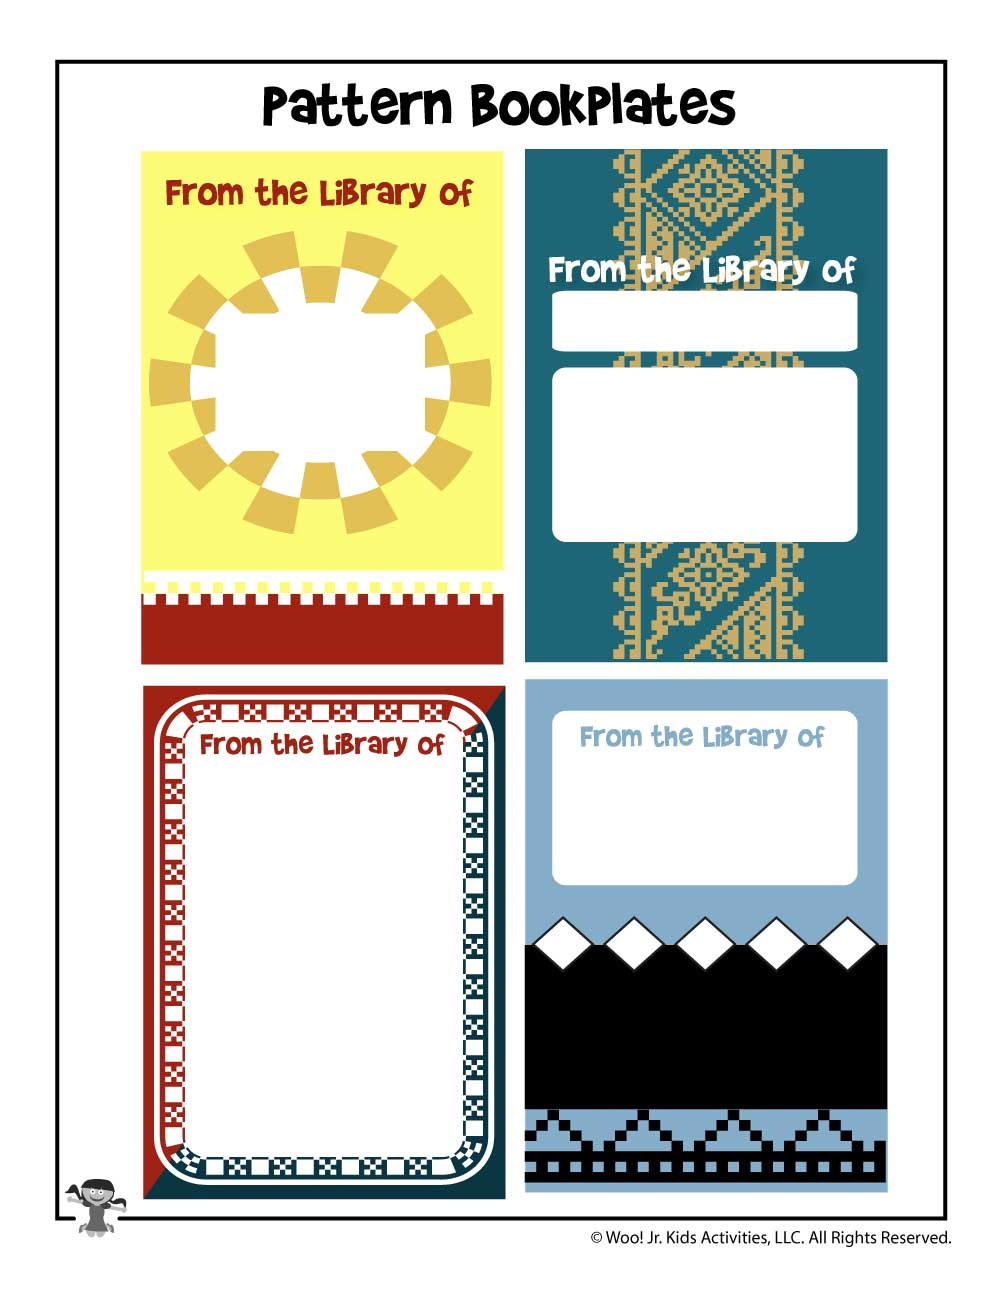 photograph relating to Printable Bookplates identify Conventional Printable Bookplates Woo! Jr. Children Functions